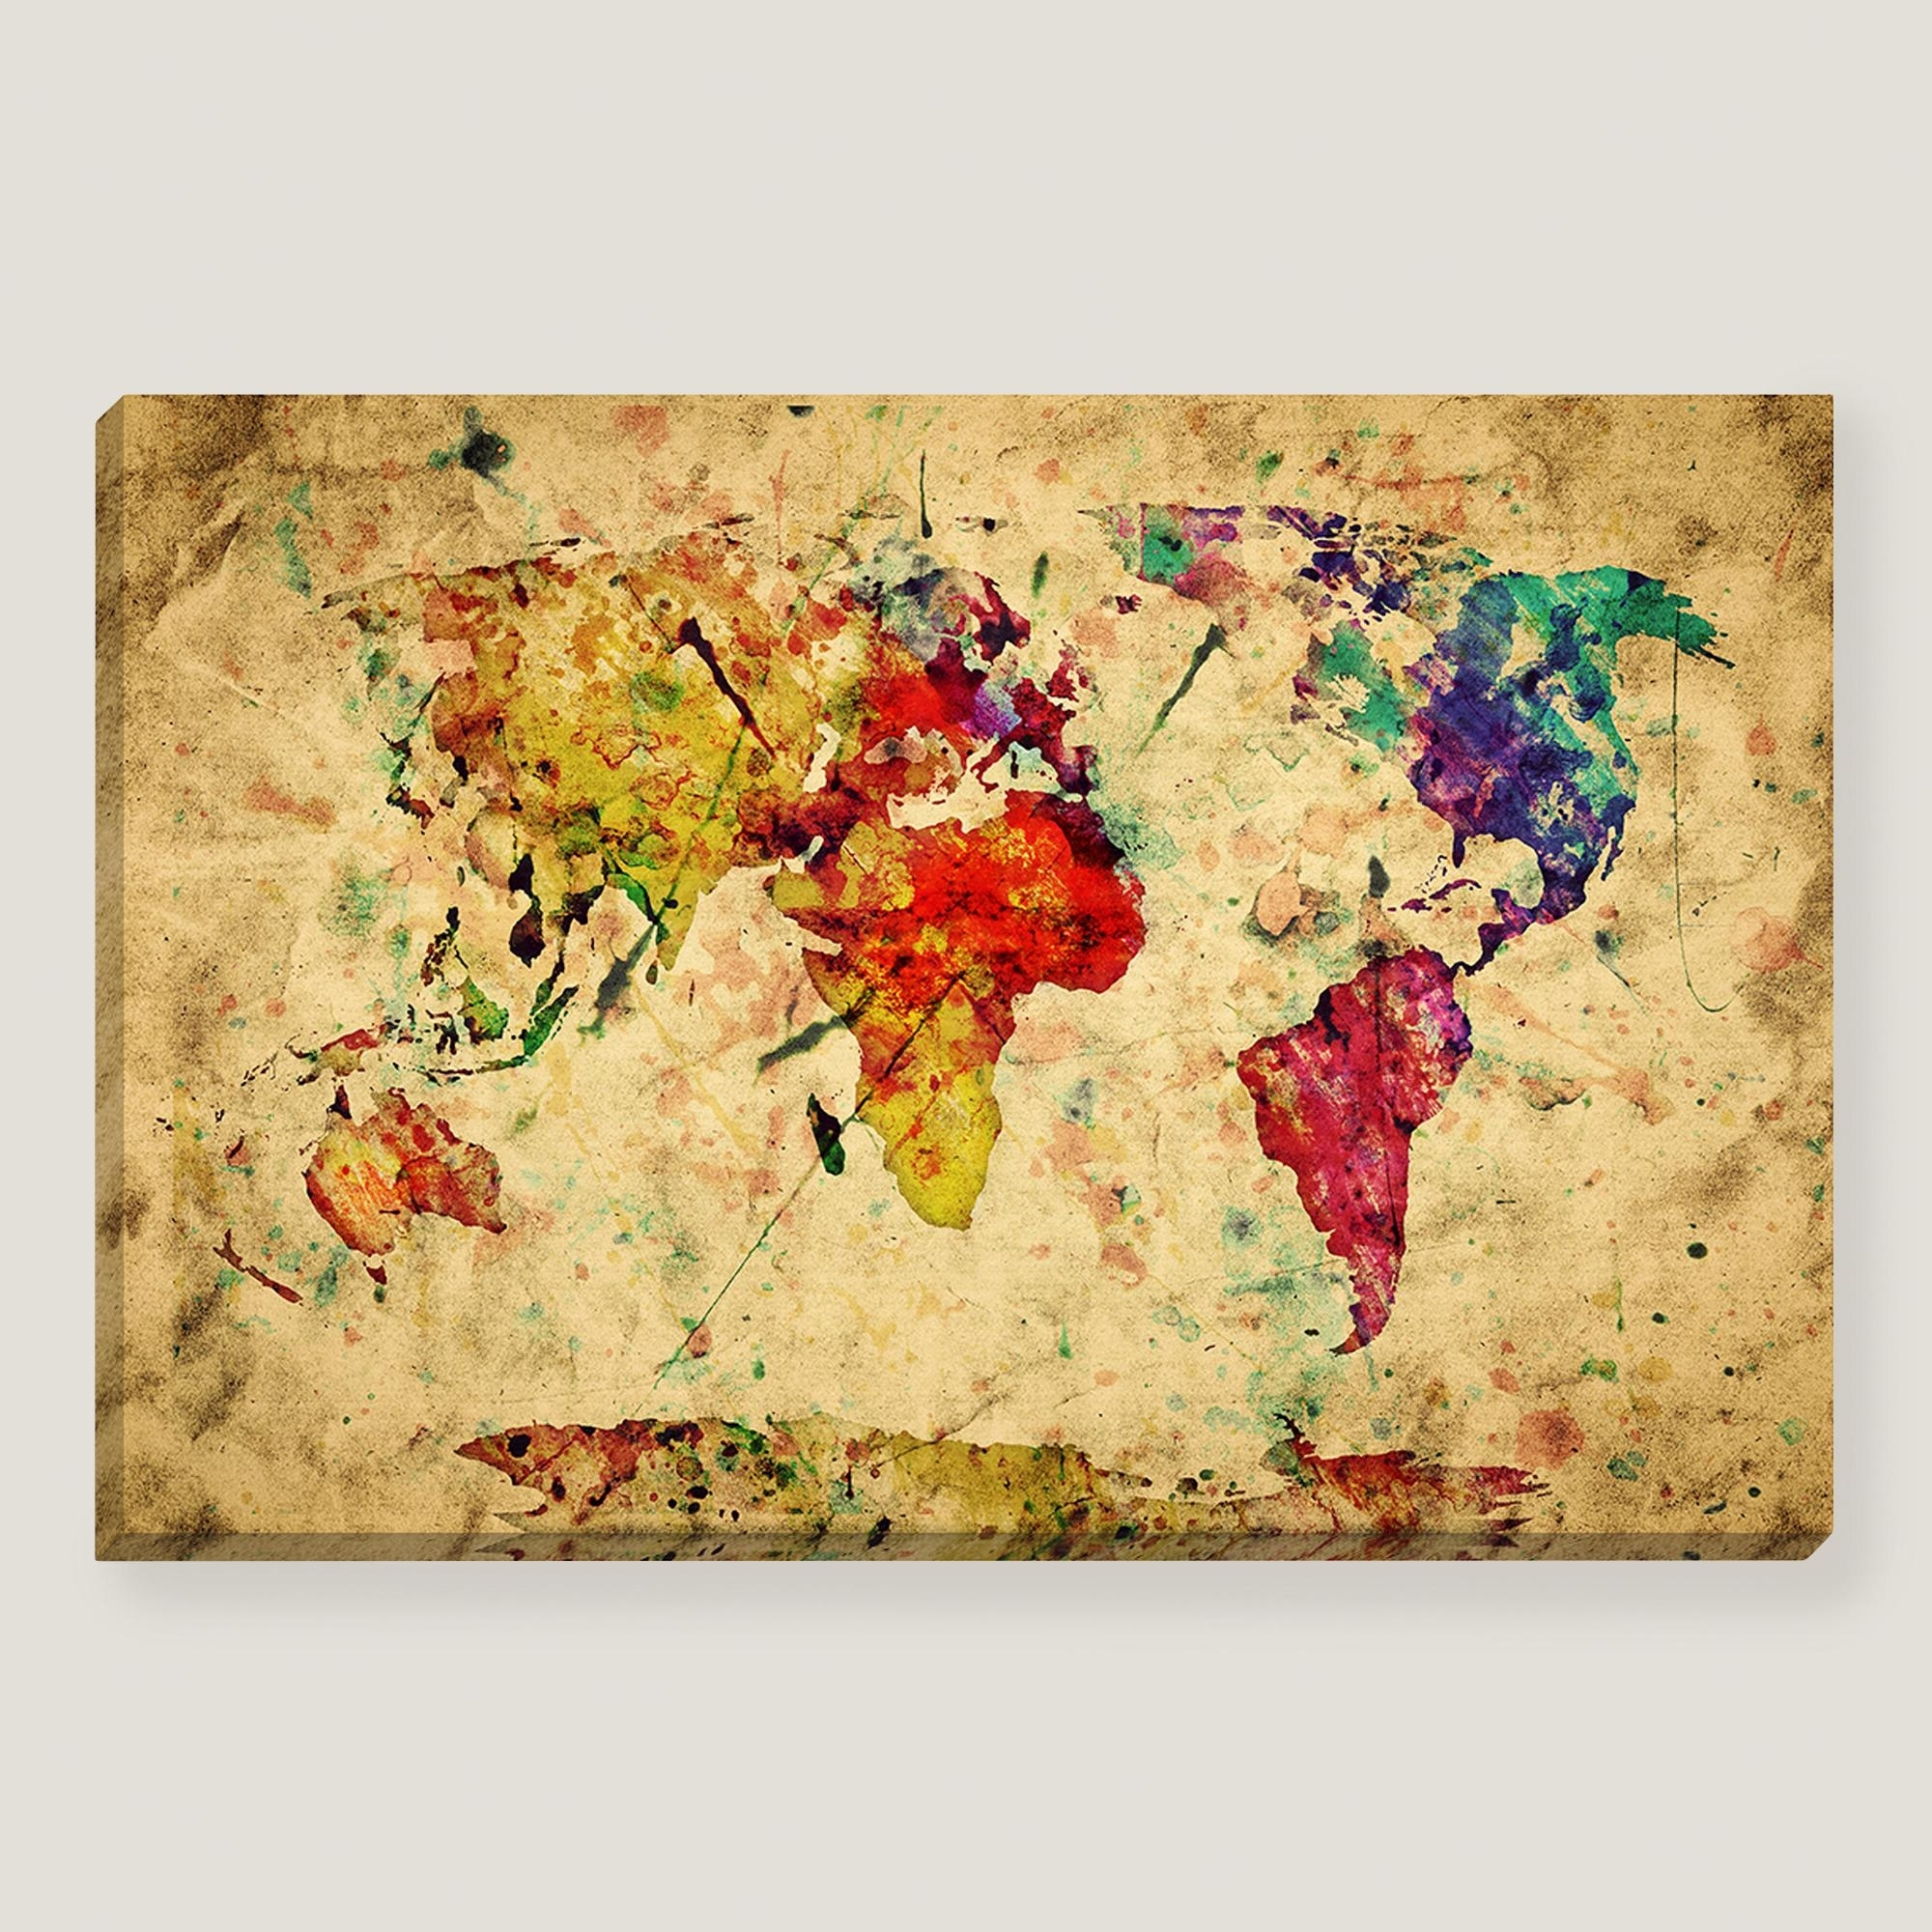 Popular Wall Art Design: Vintage Map Wall Art Amazing Design Collection Within Vintage Style Wall Art (View 7 of 15)